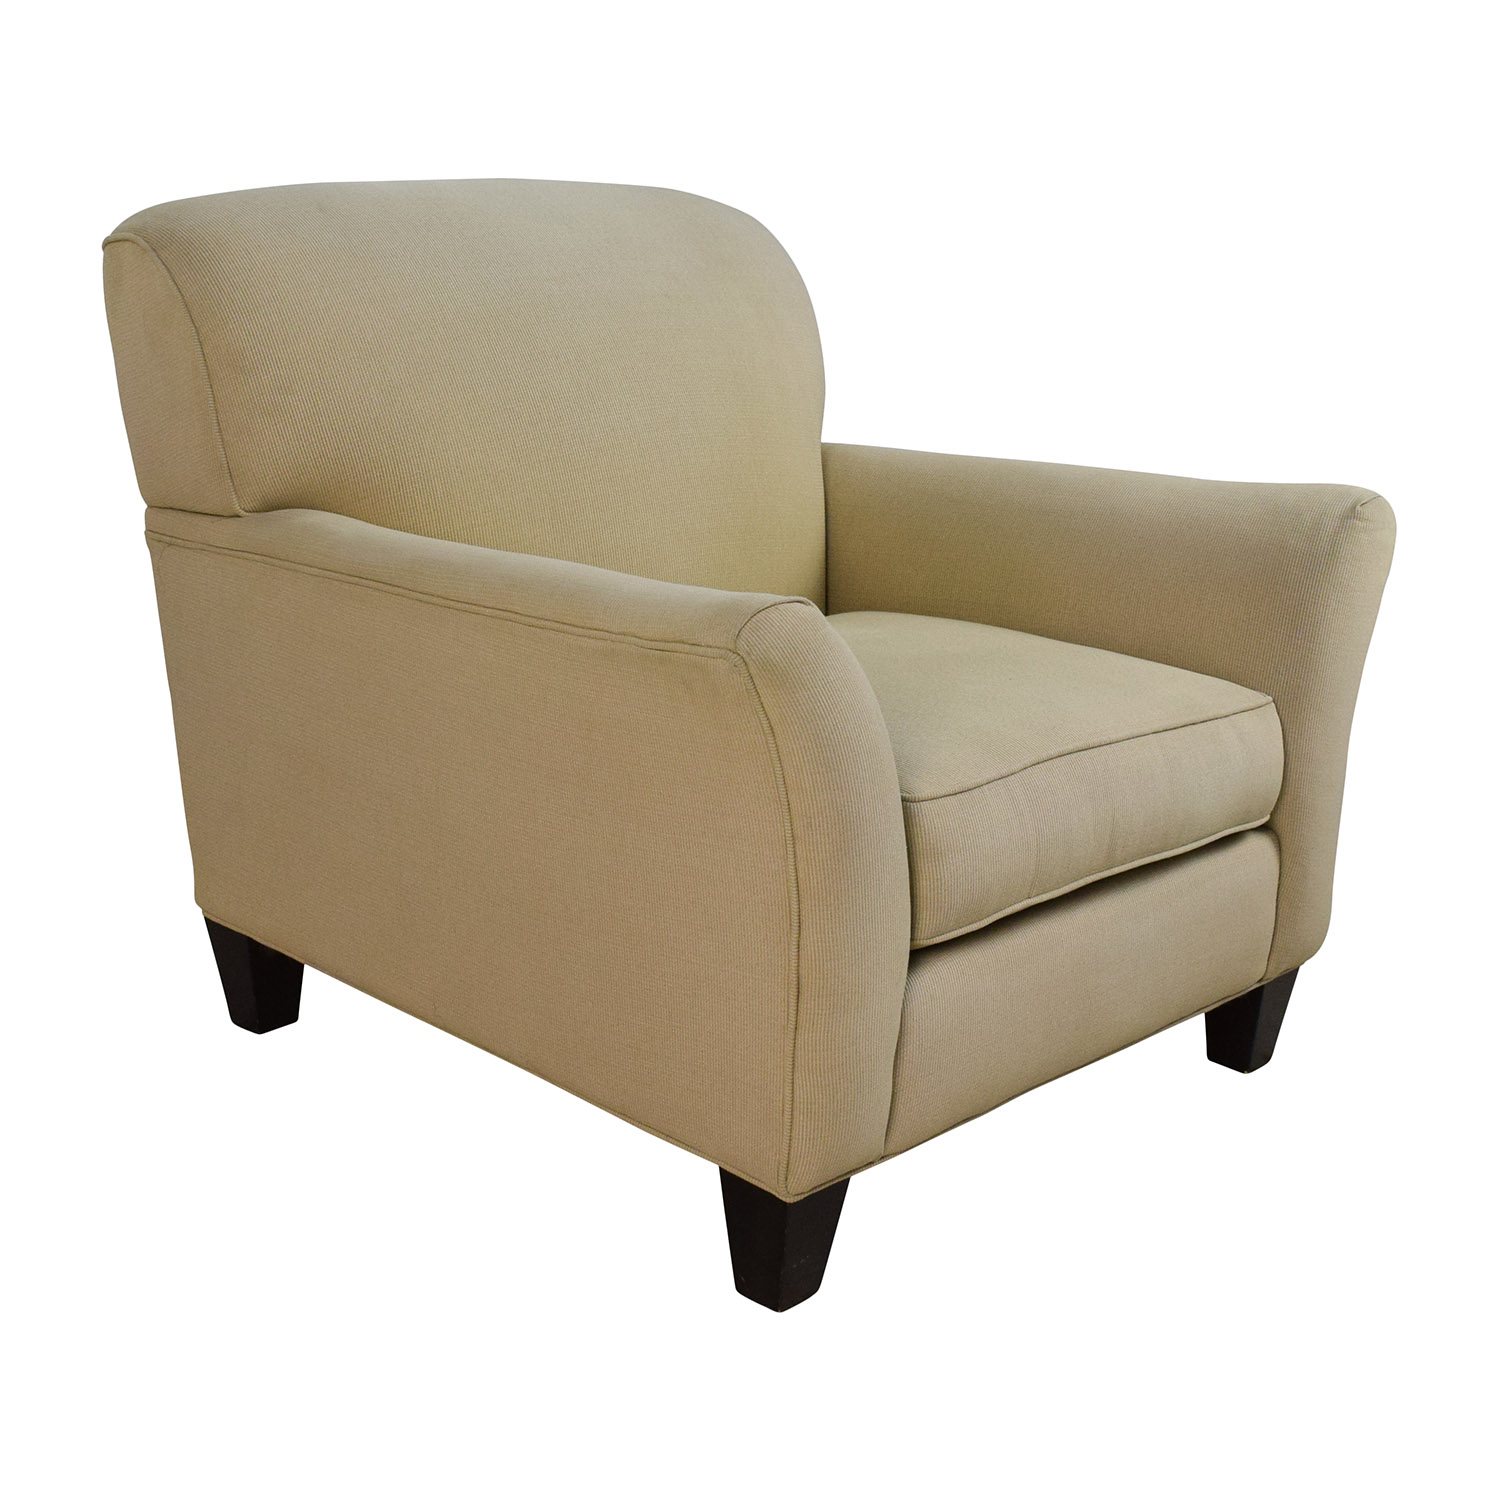 90 off rowe furniture rowe furniture capri beige sofa for Furniture 90 off